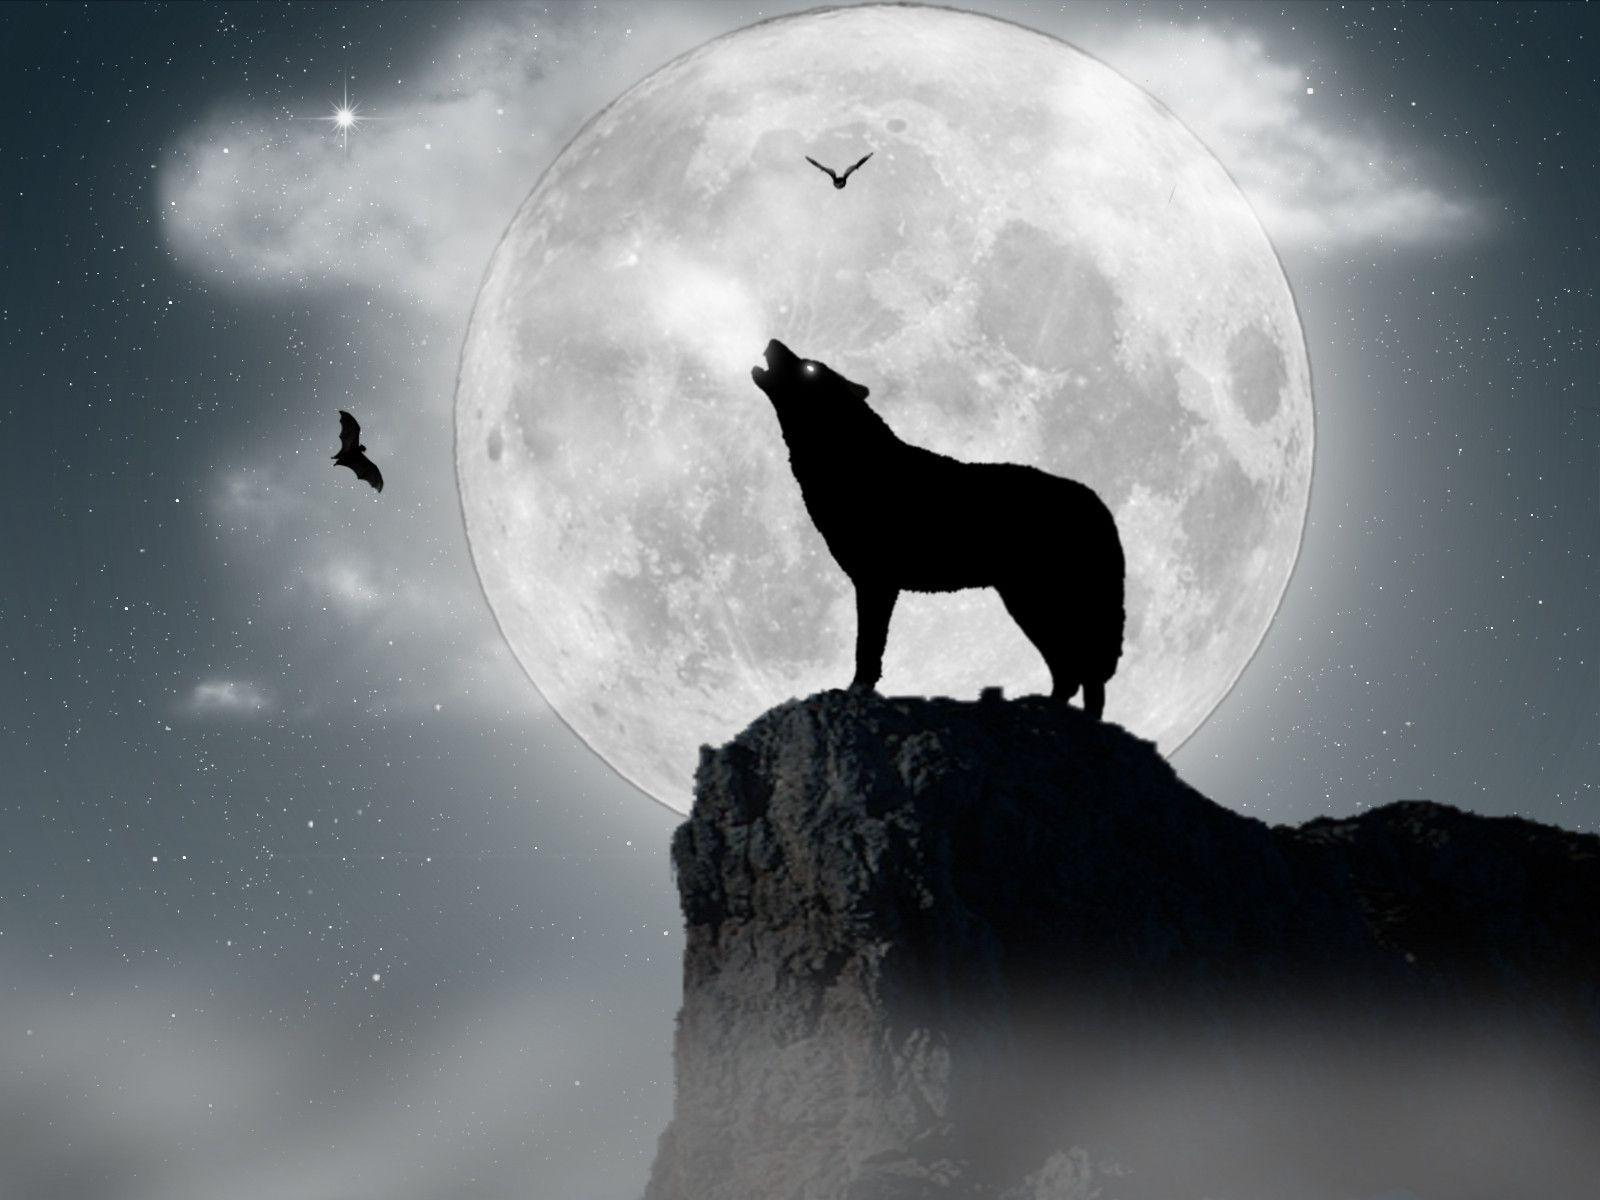 Howling wolf wallpapers wallpaper cave - Wolf howling hd ...